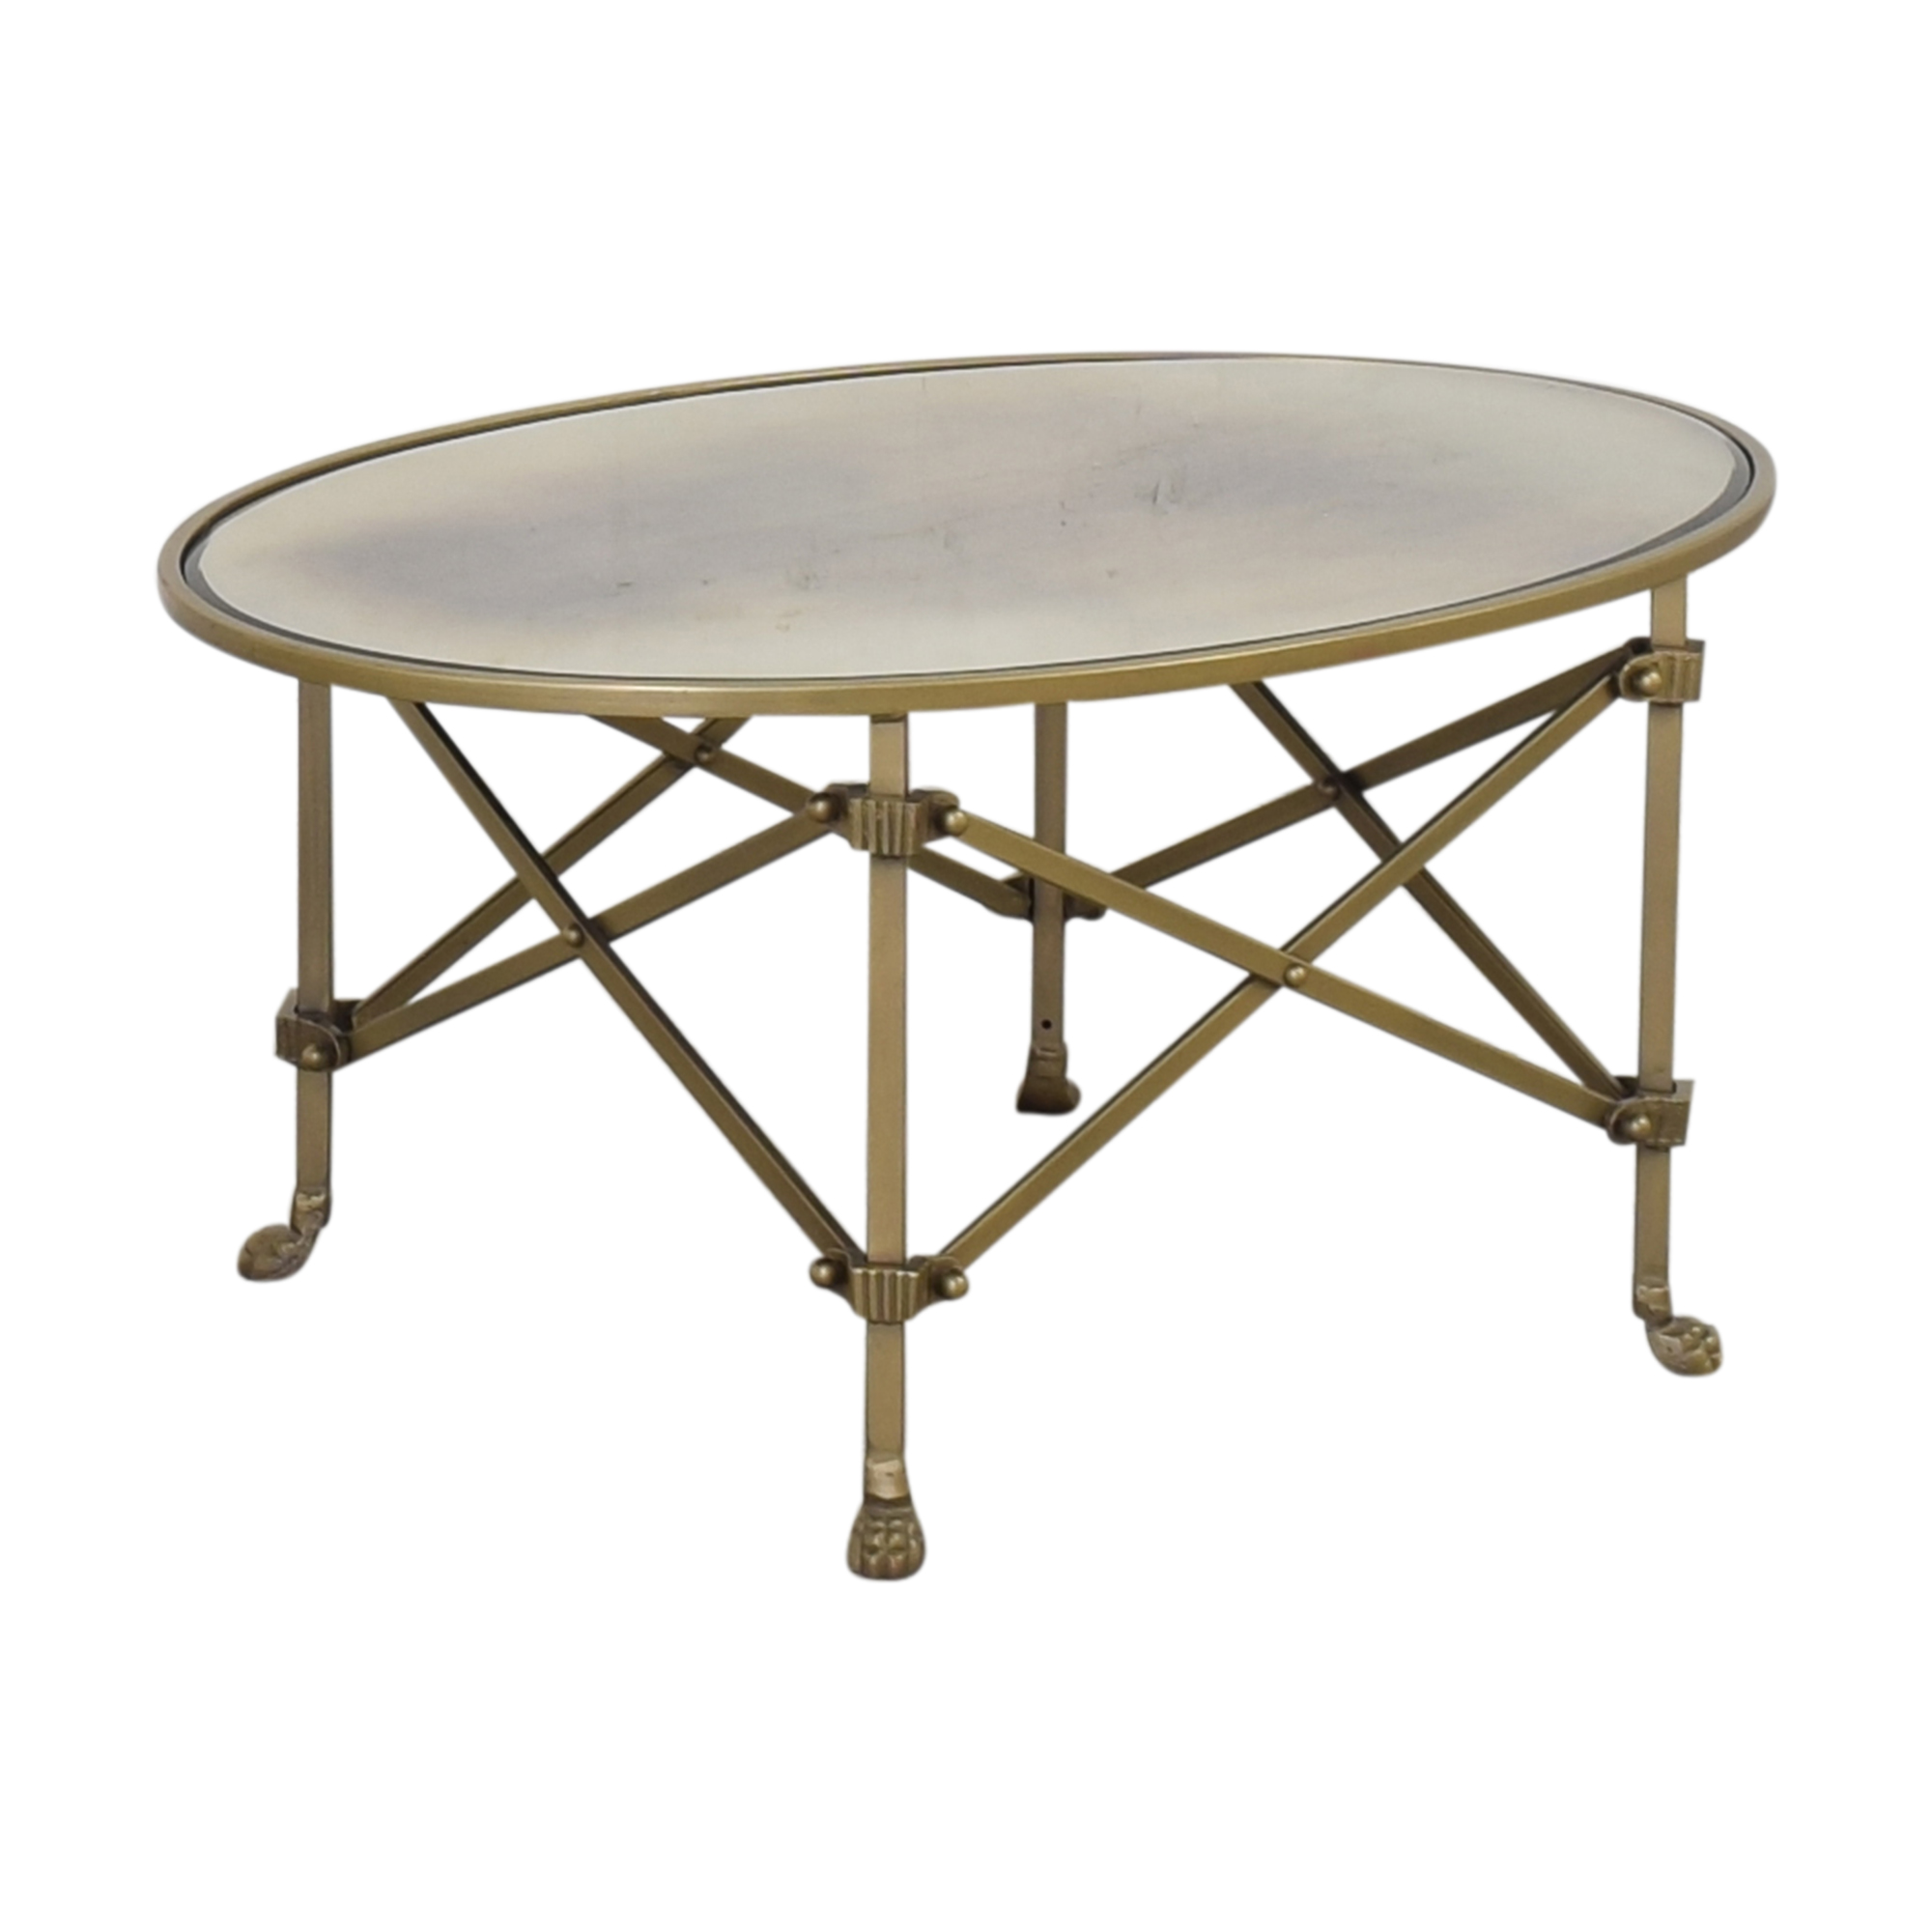 buy Ballard Designs Ballard Designs Olivia Cocktail Table online